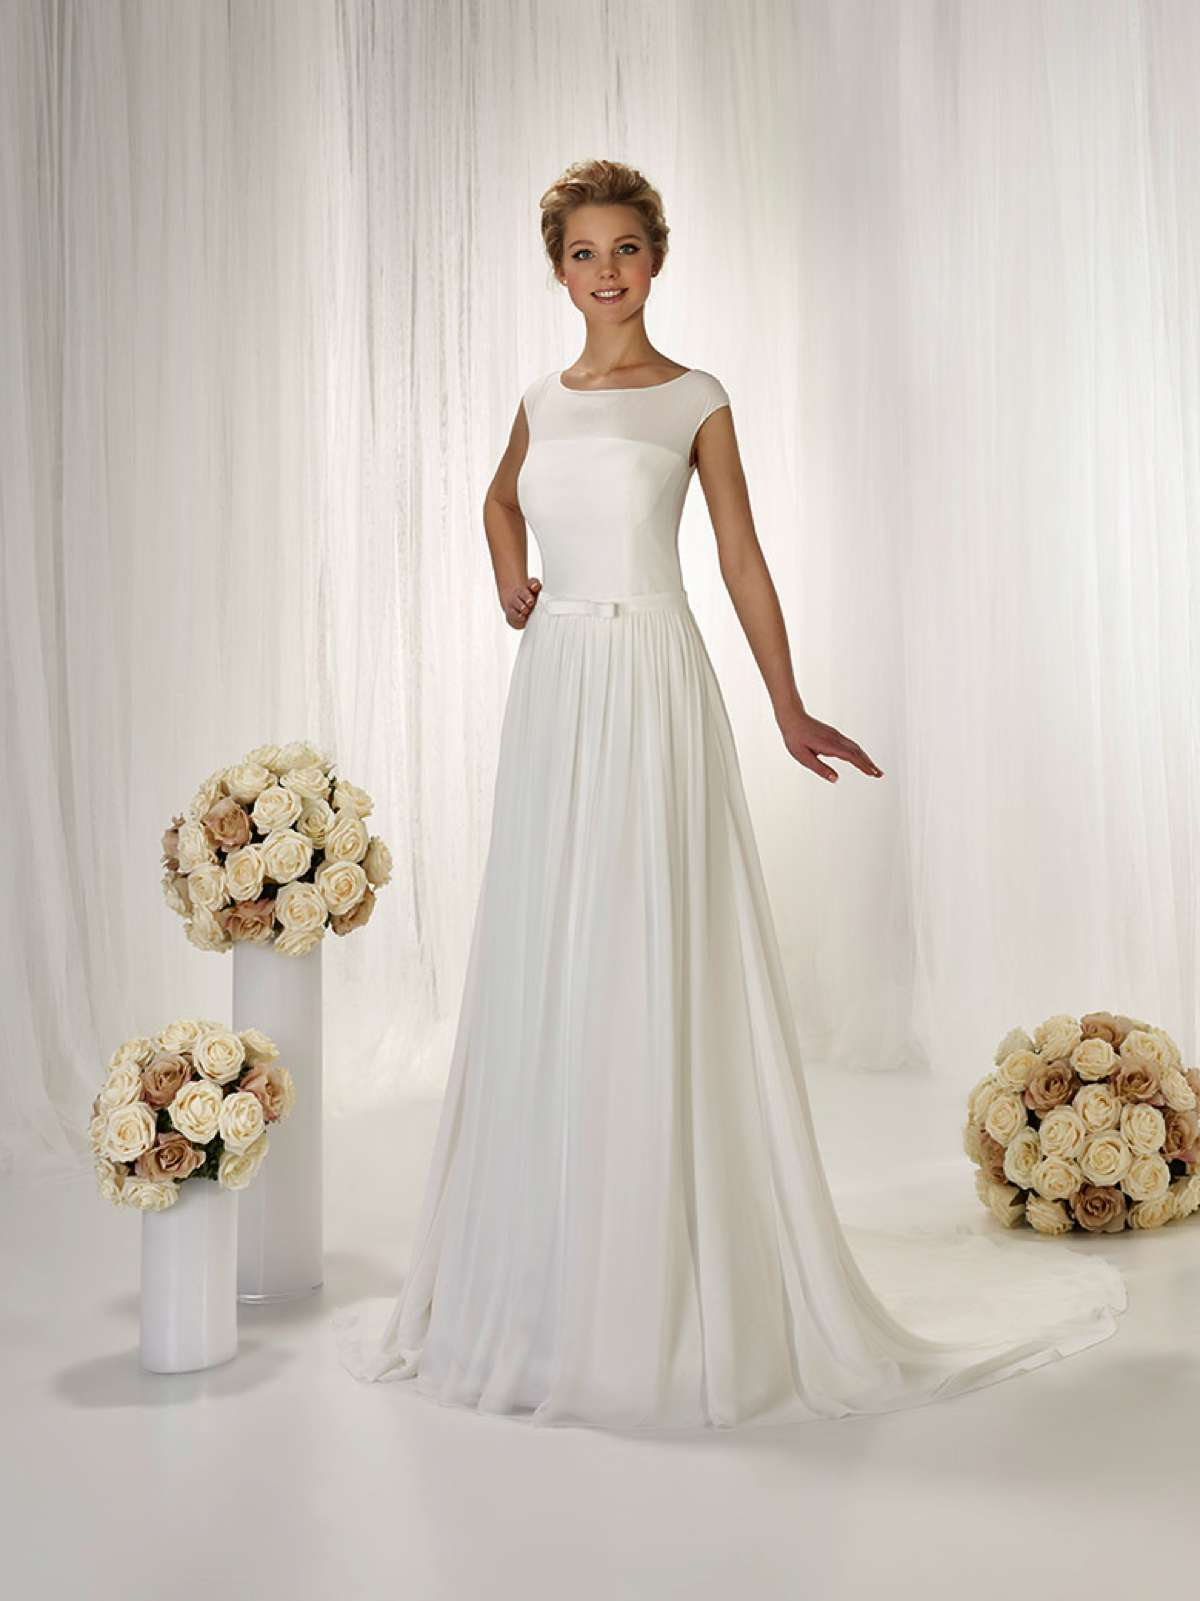 Find A Wedding Dress To Suit Your Shape!